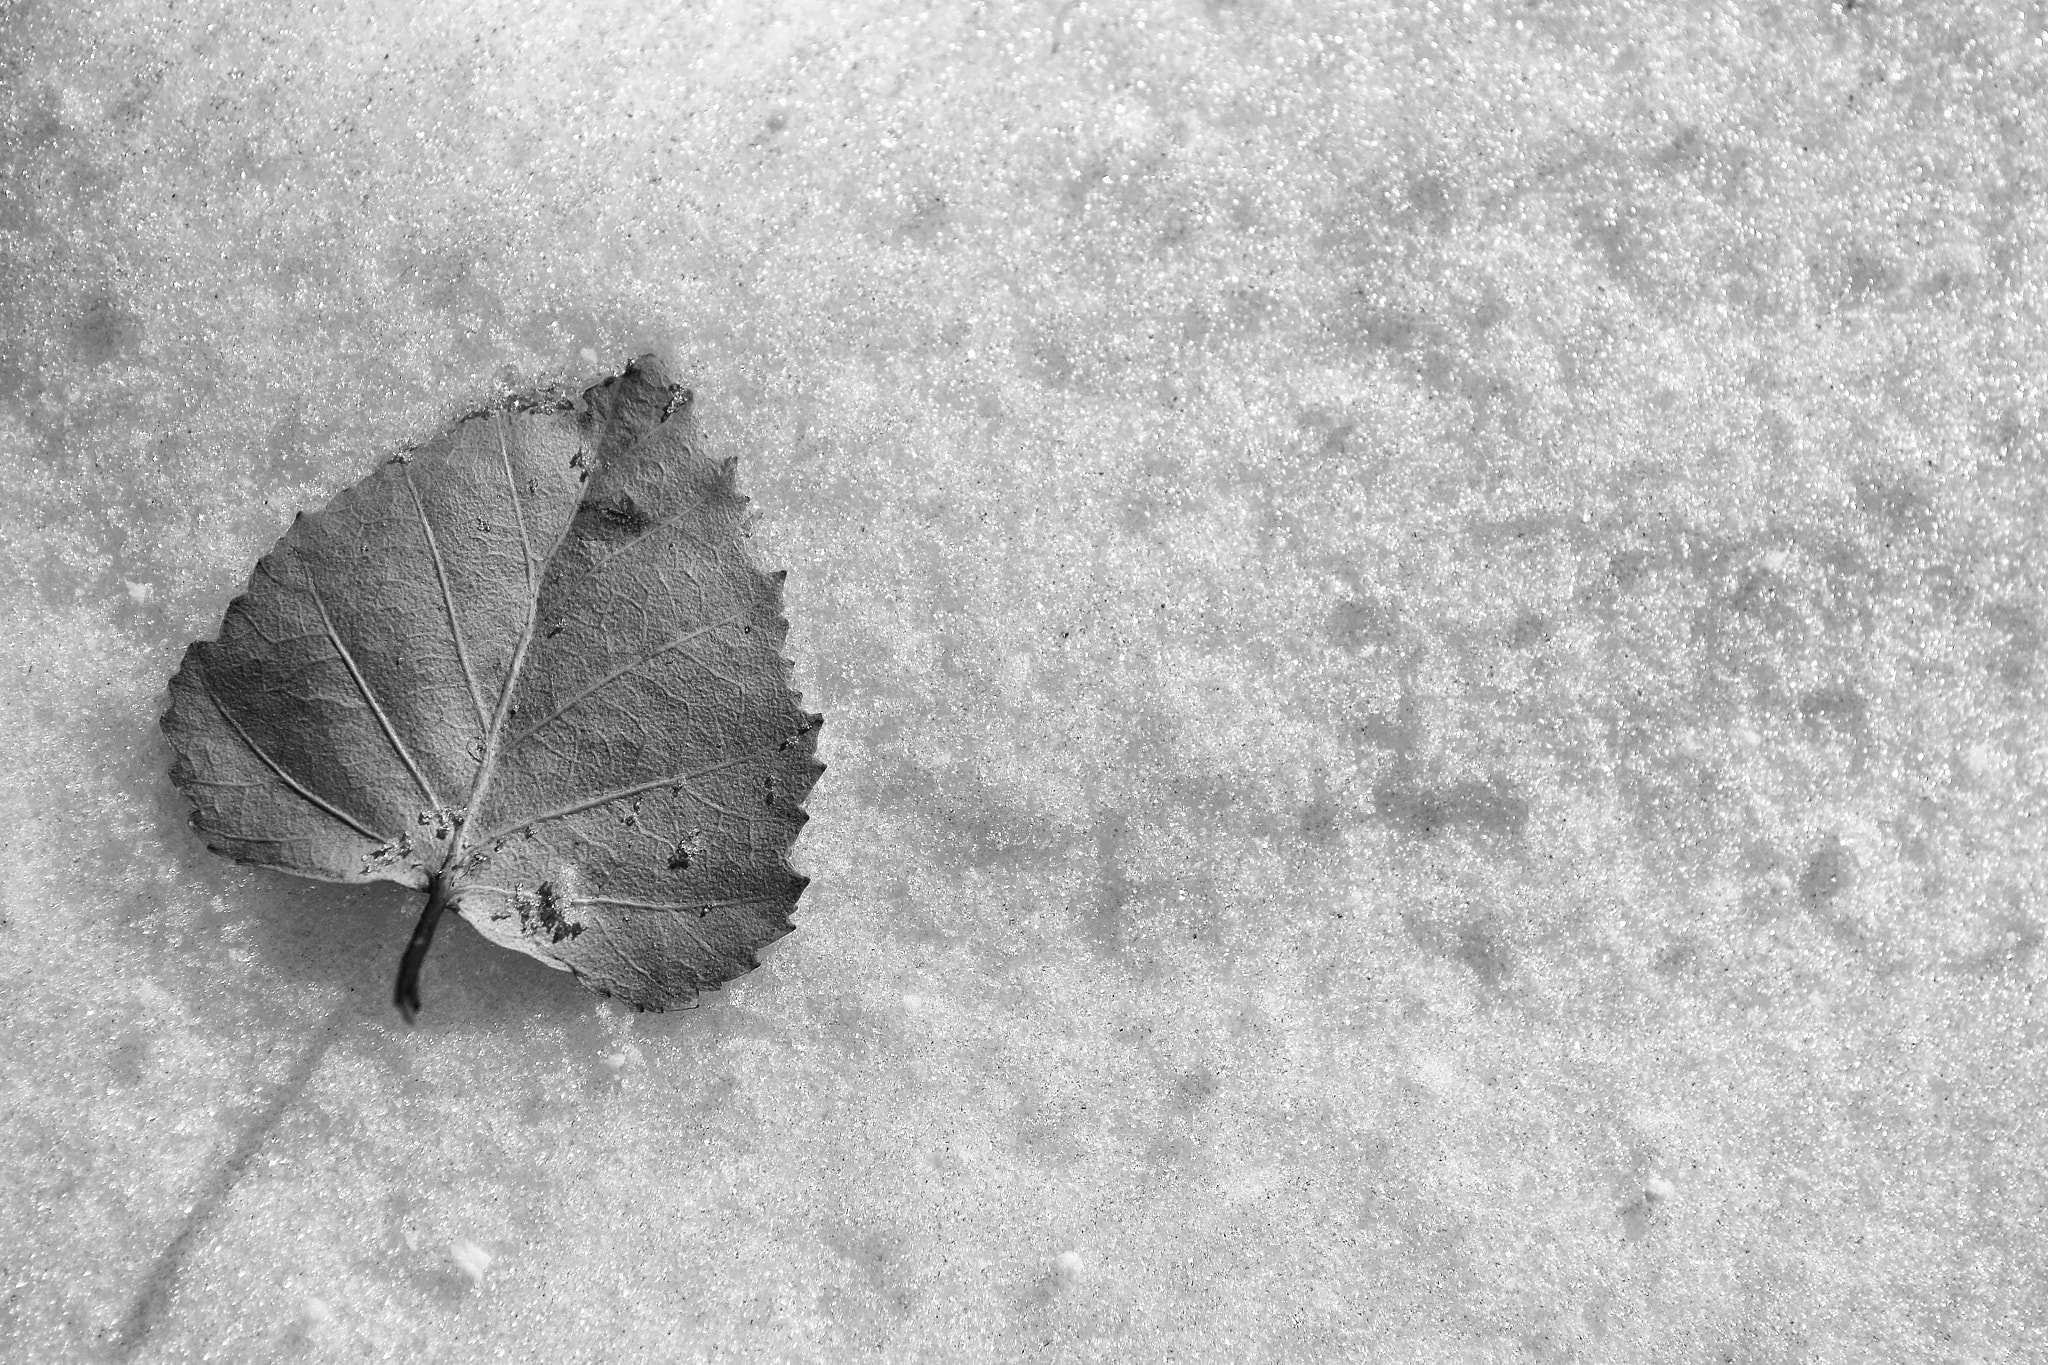 Photograph Leaf and snow by Salvo Mangiaglia on 500px